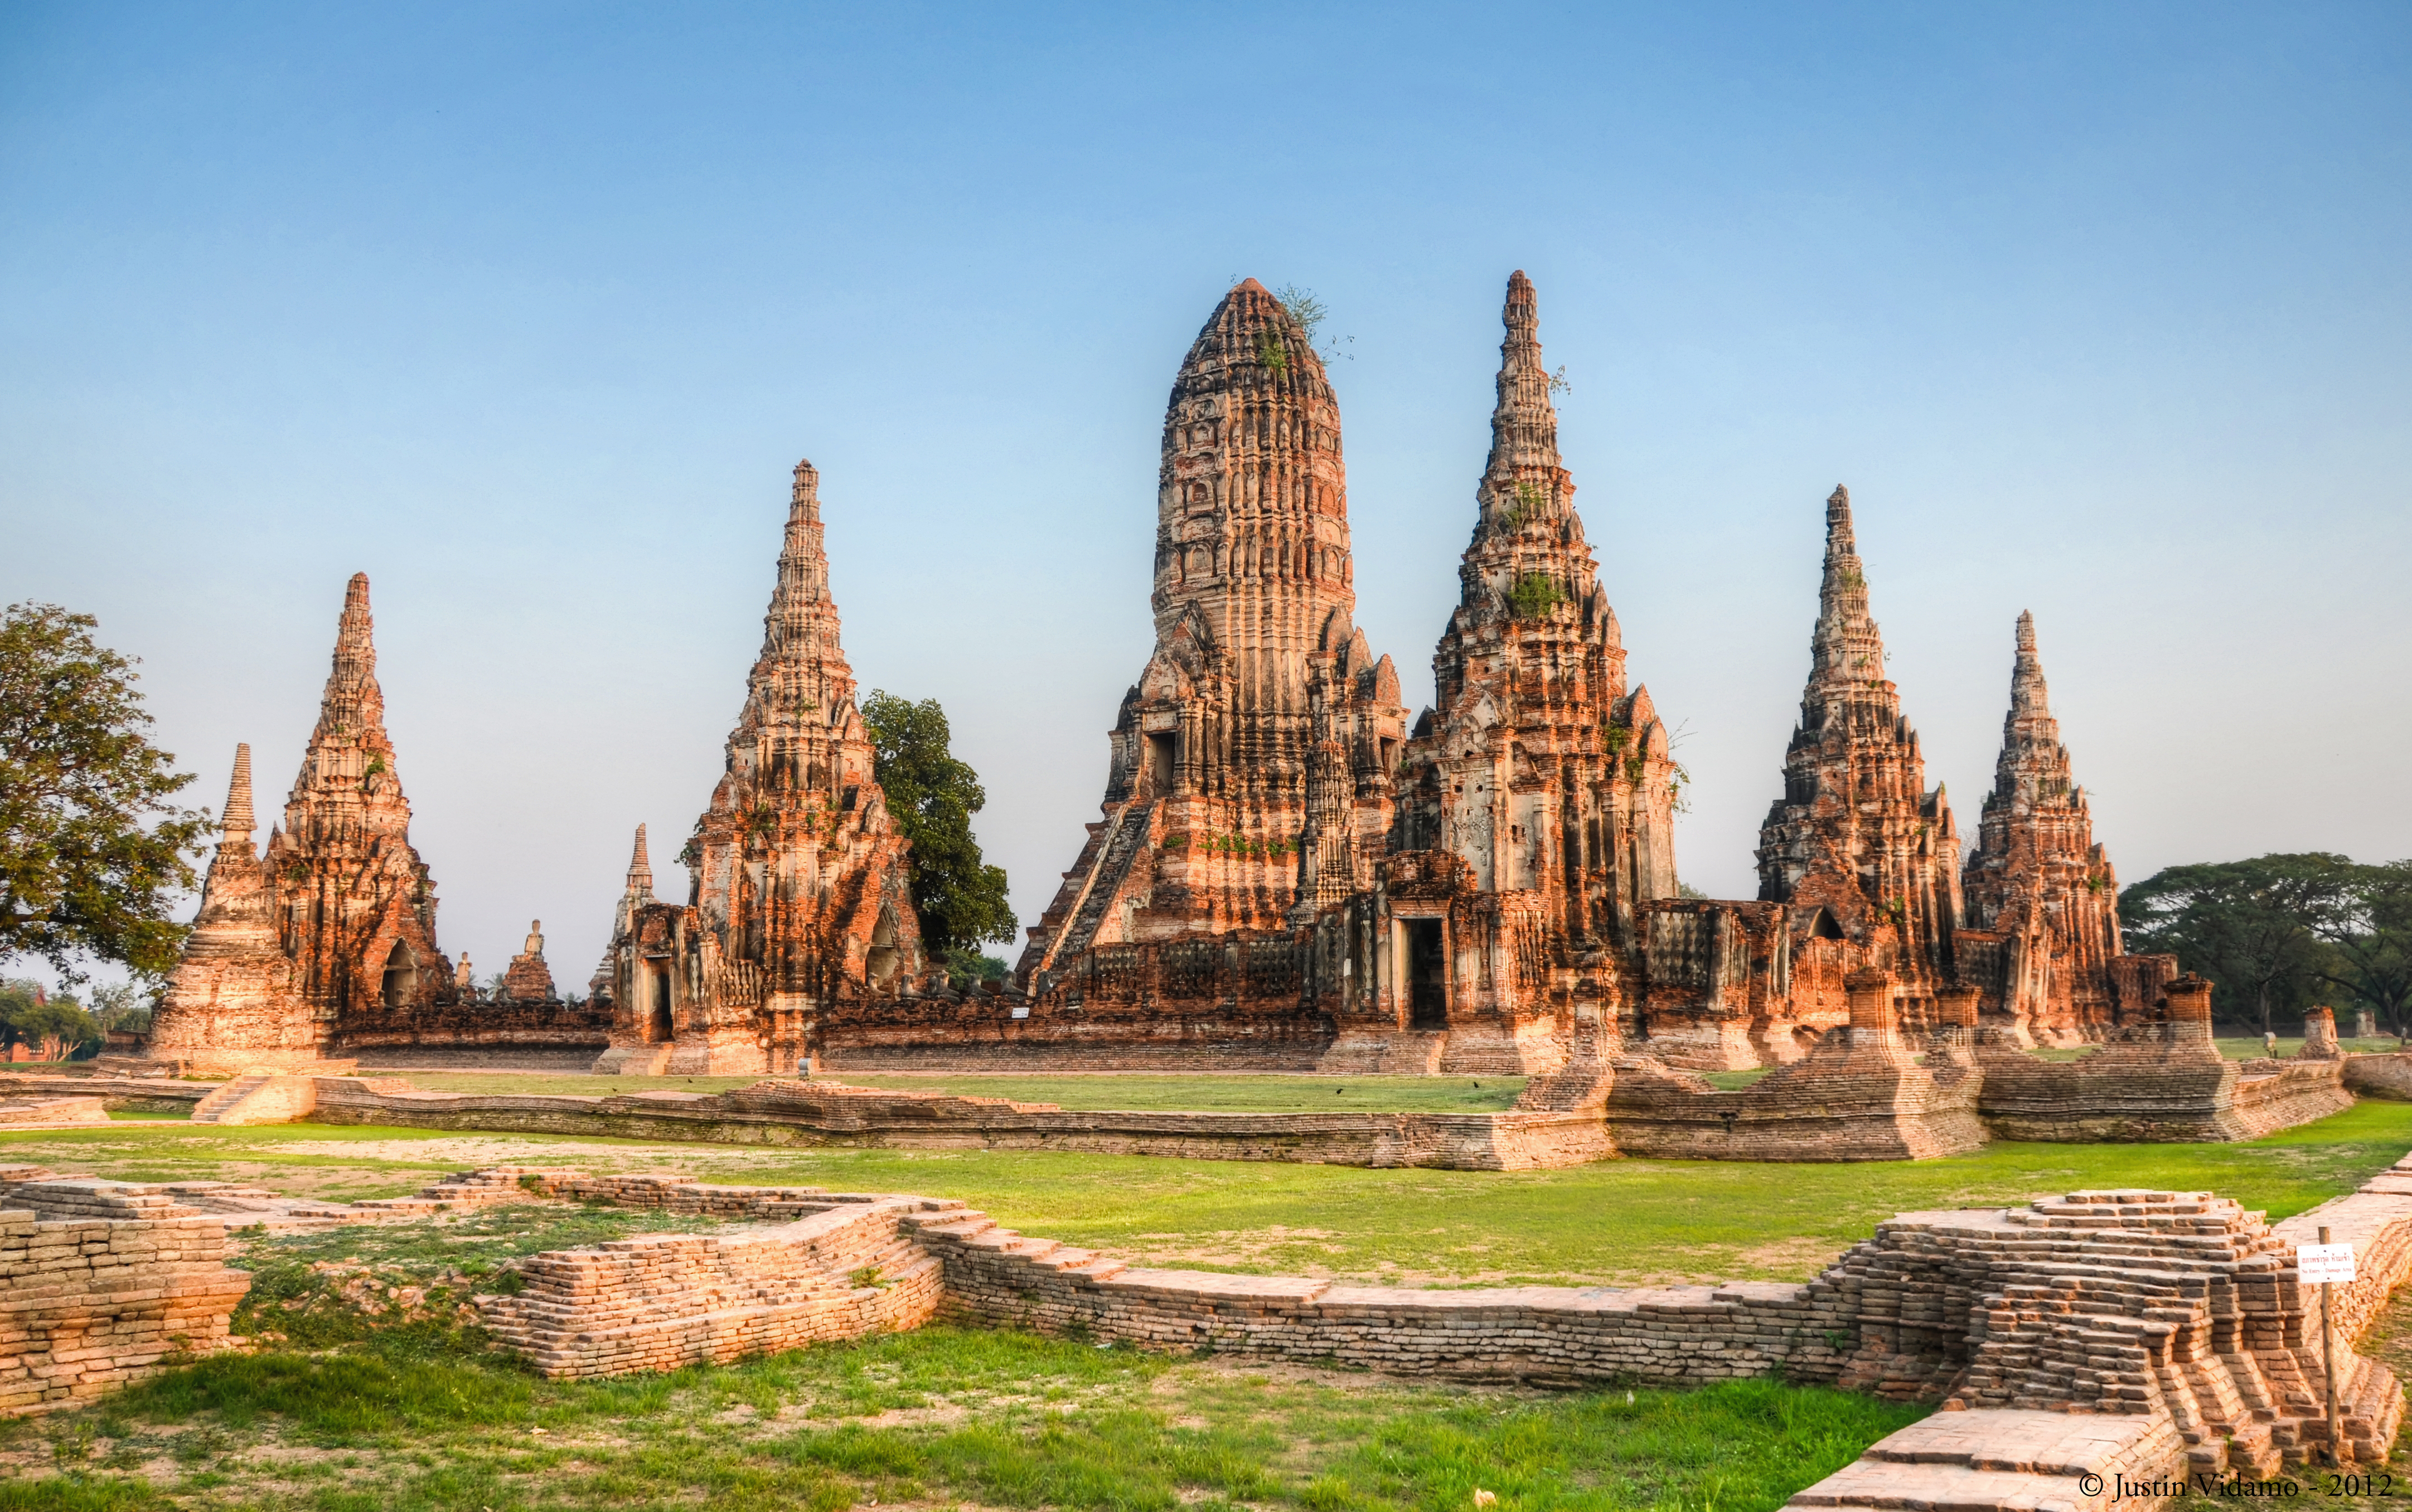 Sunset_at_Wat_Chaiwatthanaram,_Ayutthaya,_Thailand